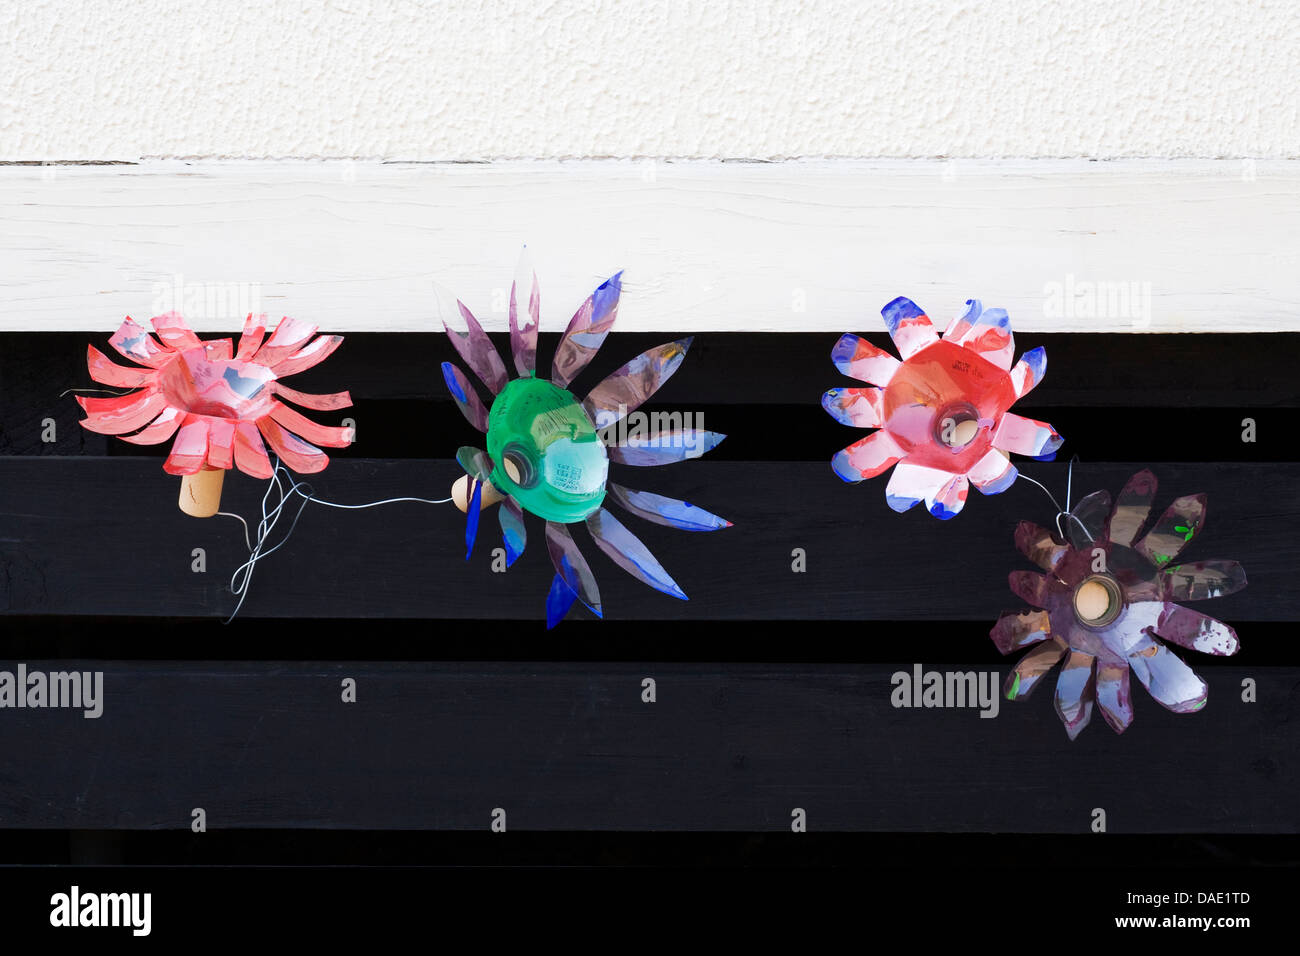 Recycling. Flowers made by children from recycled materials. - Stock Image